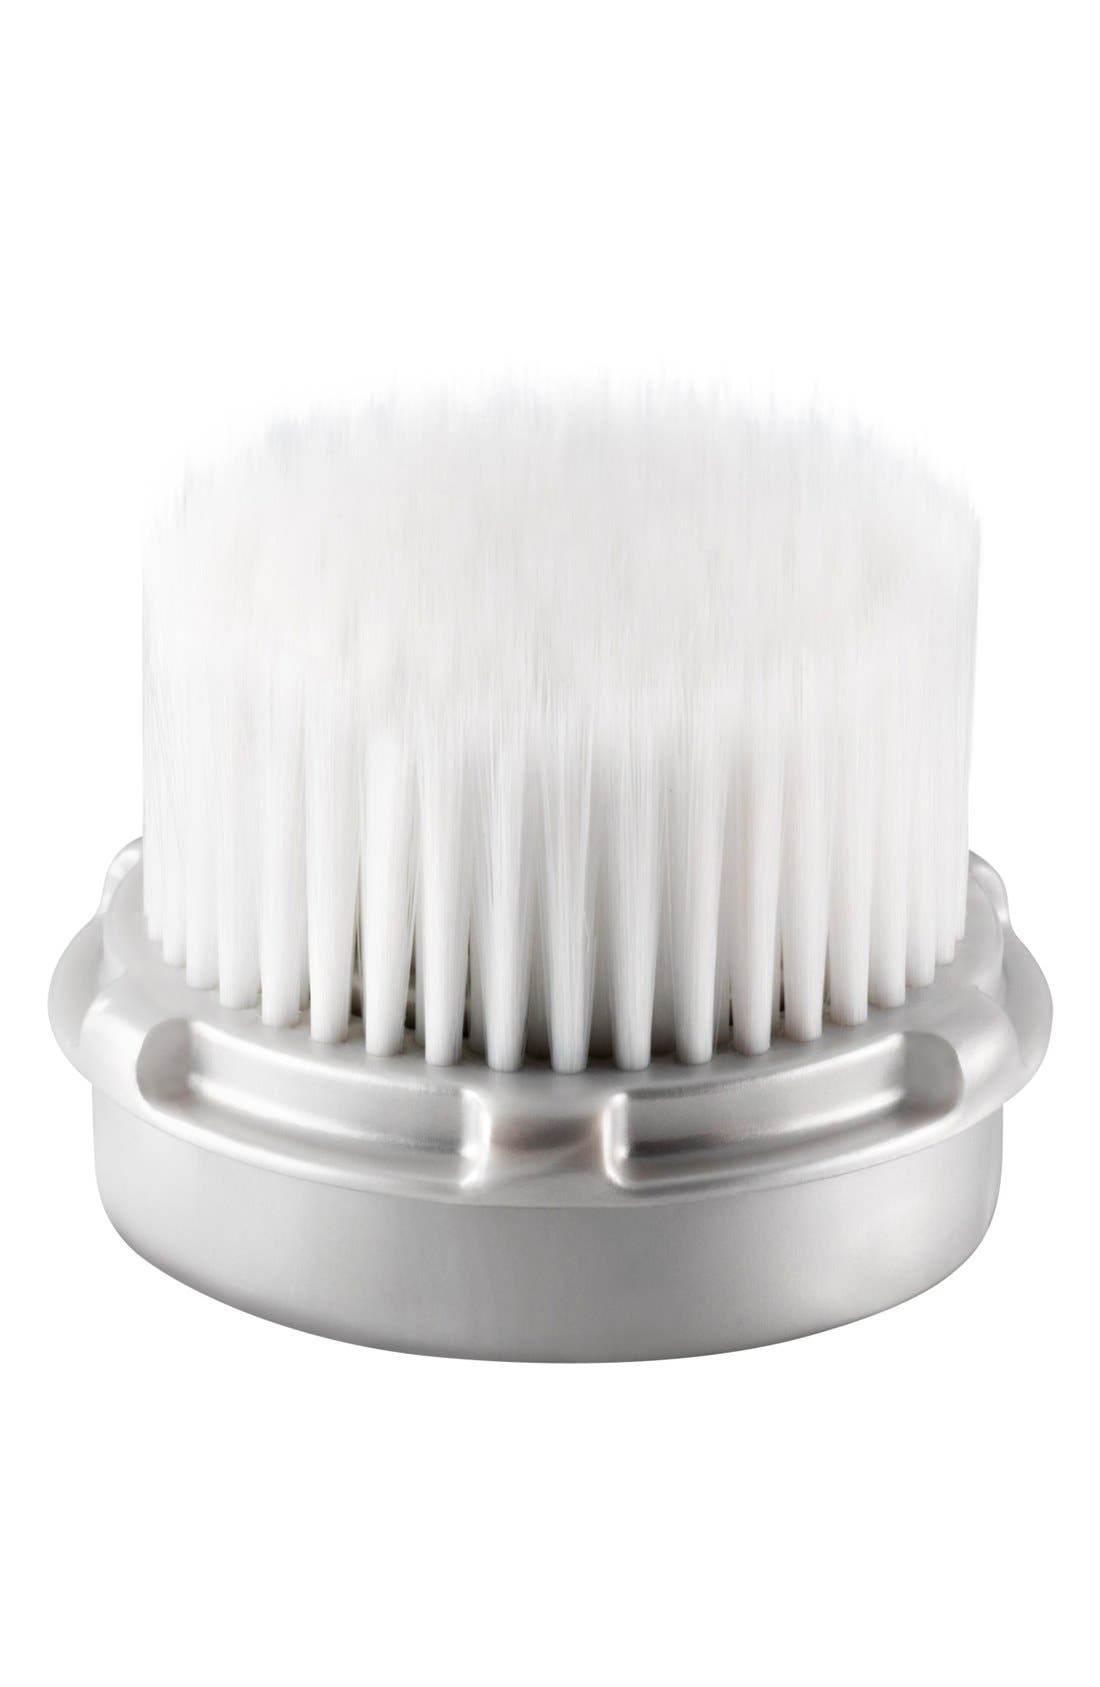 CLARISONIC 'Cashmere Cleanse' Luxury Face Brush Head